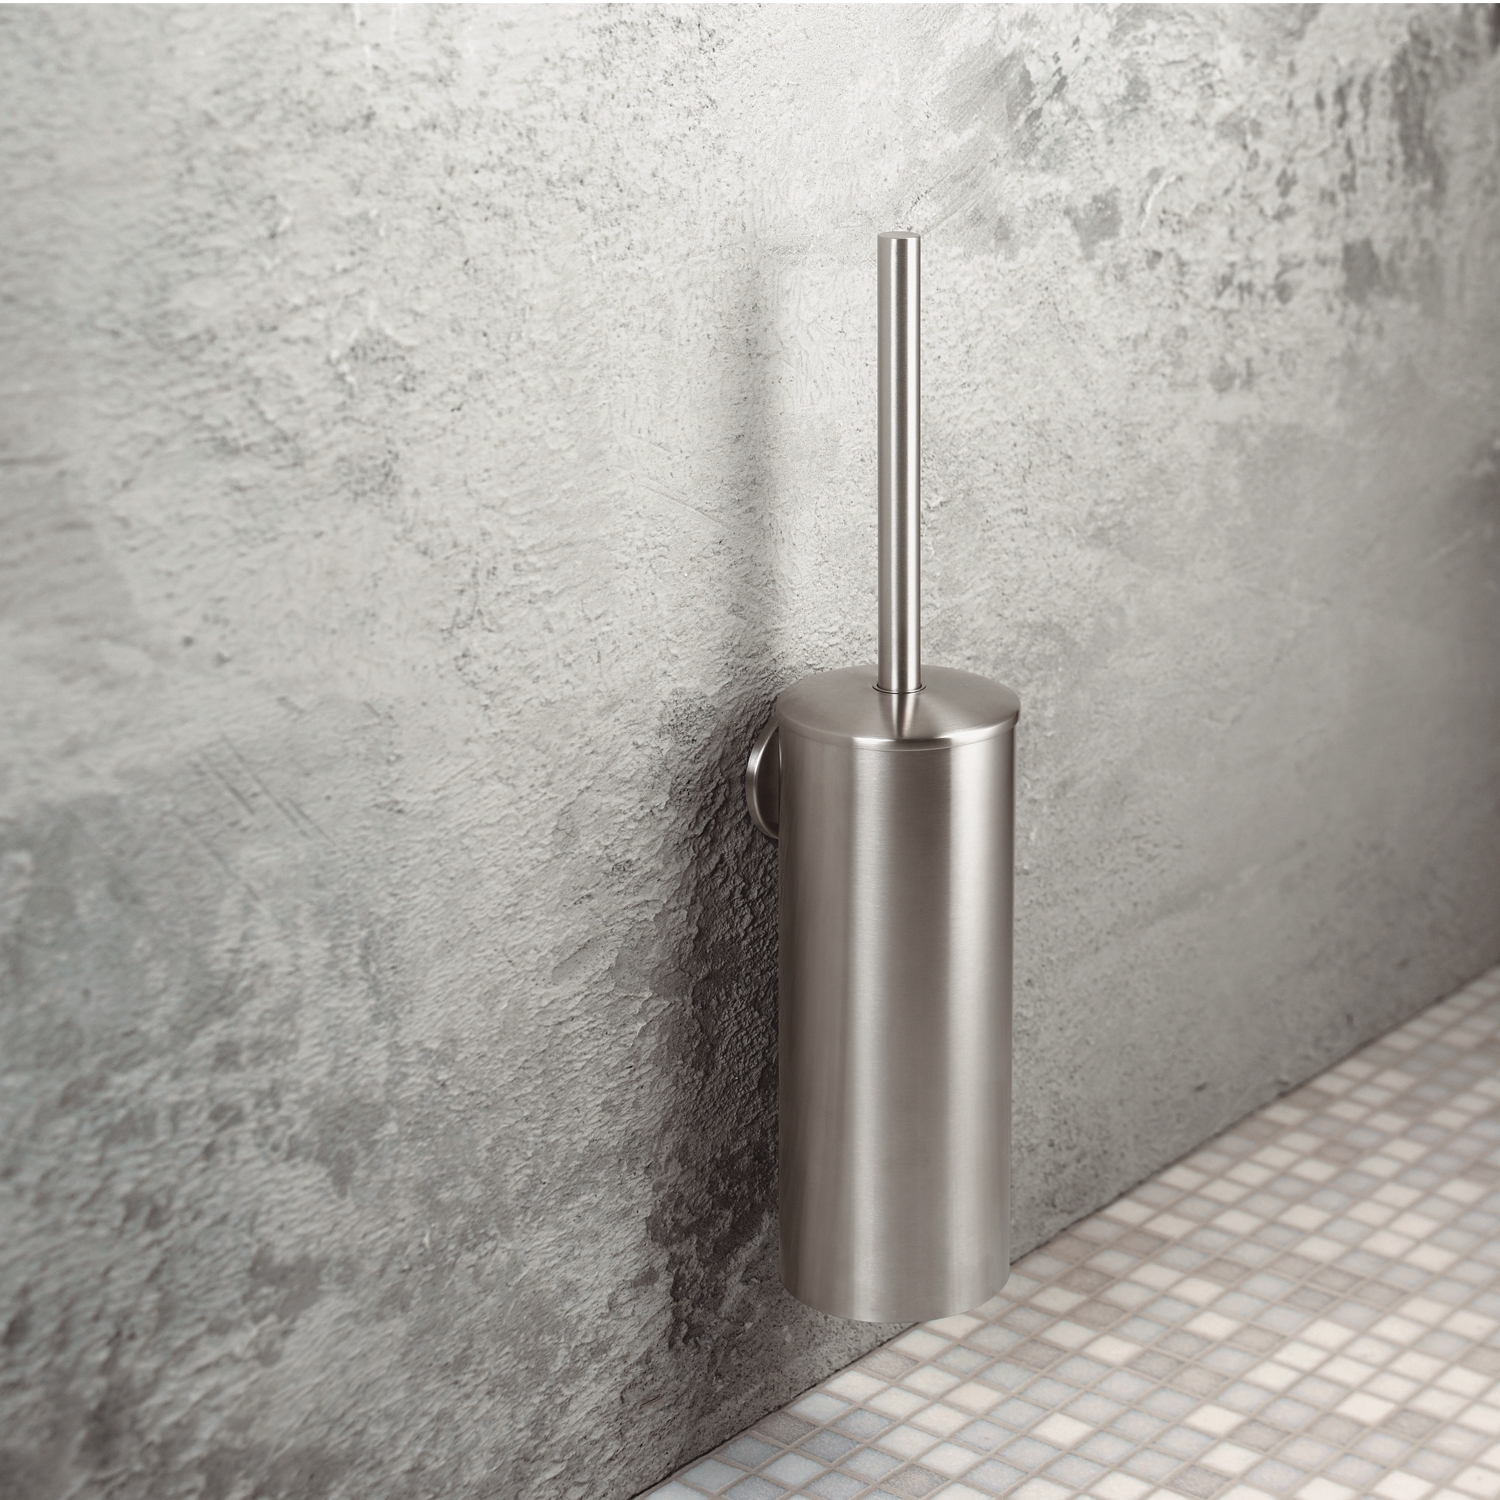 Haceka Silence Modern Stainless Finish Toilet Brush and Holder